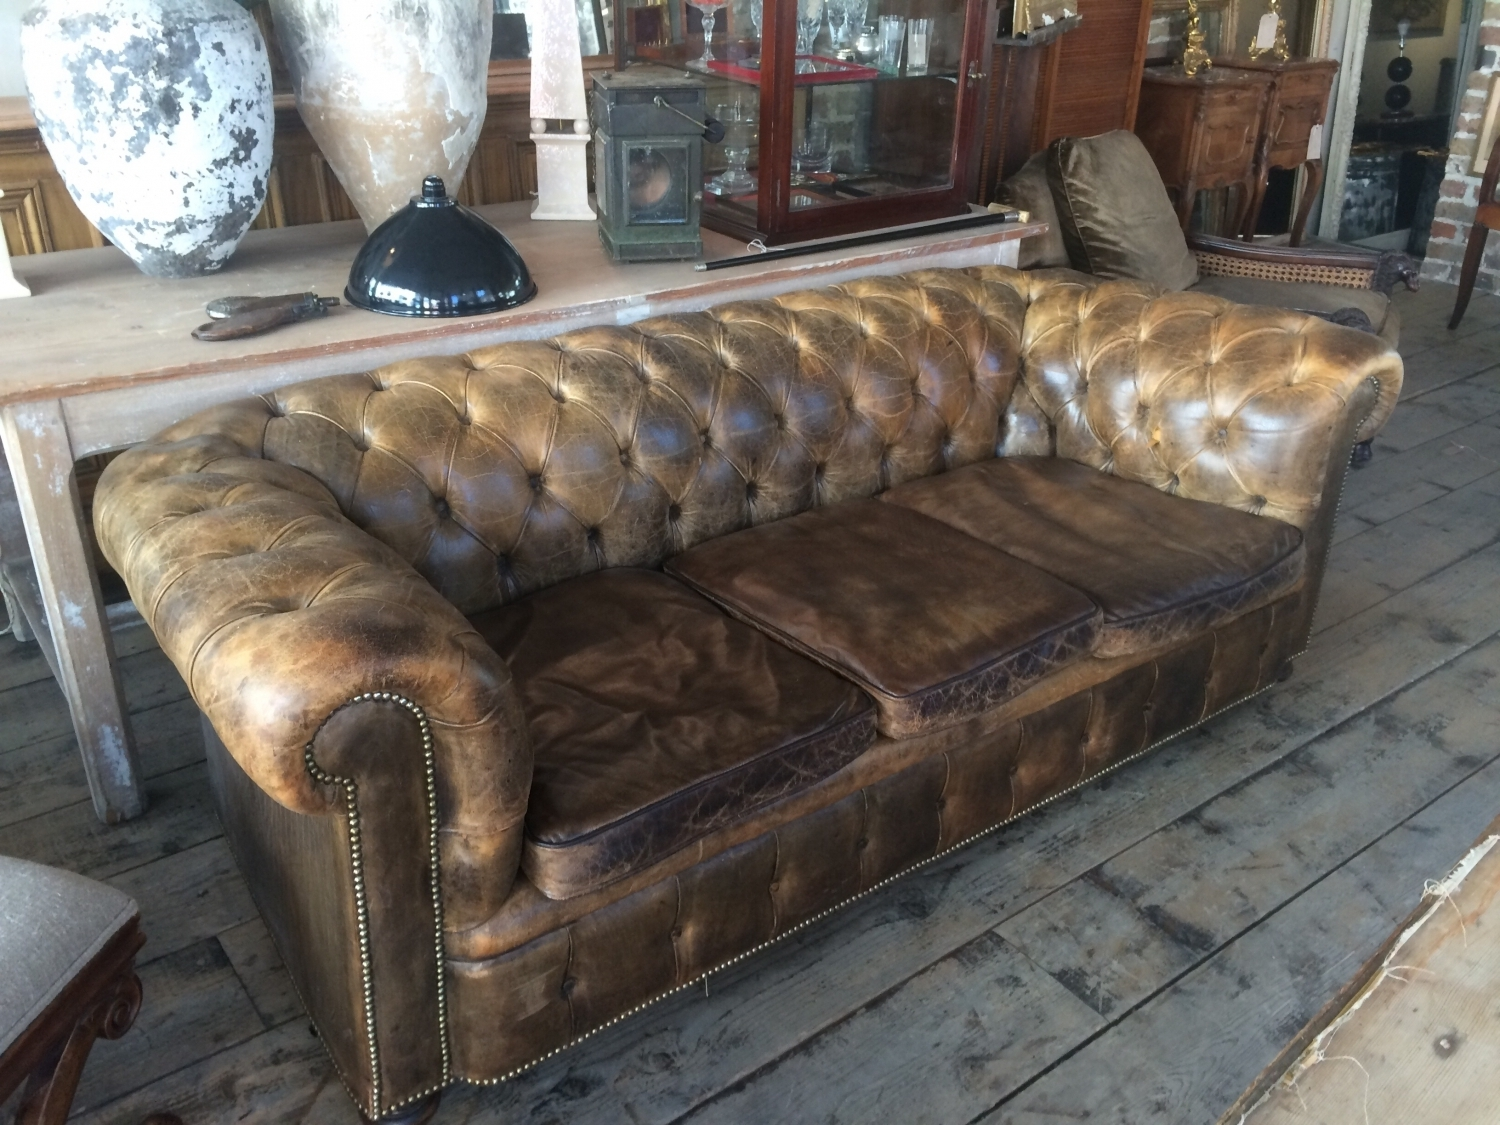 Vintage Chesterfield Sofas In Trendy Chesterfield Sofa In Furniture (View 8 of 15)